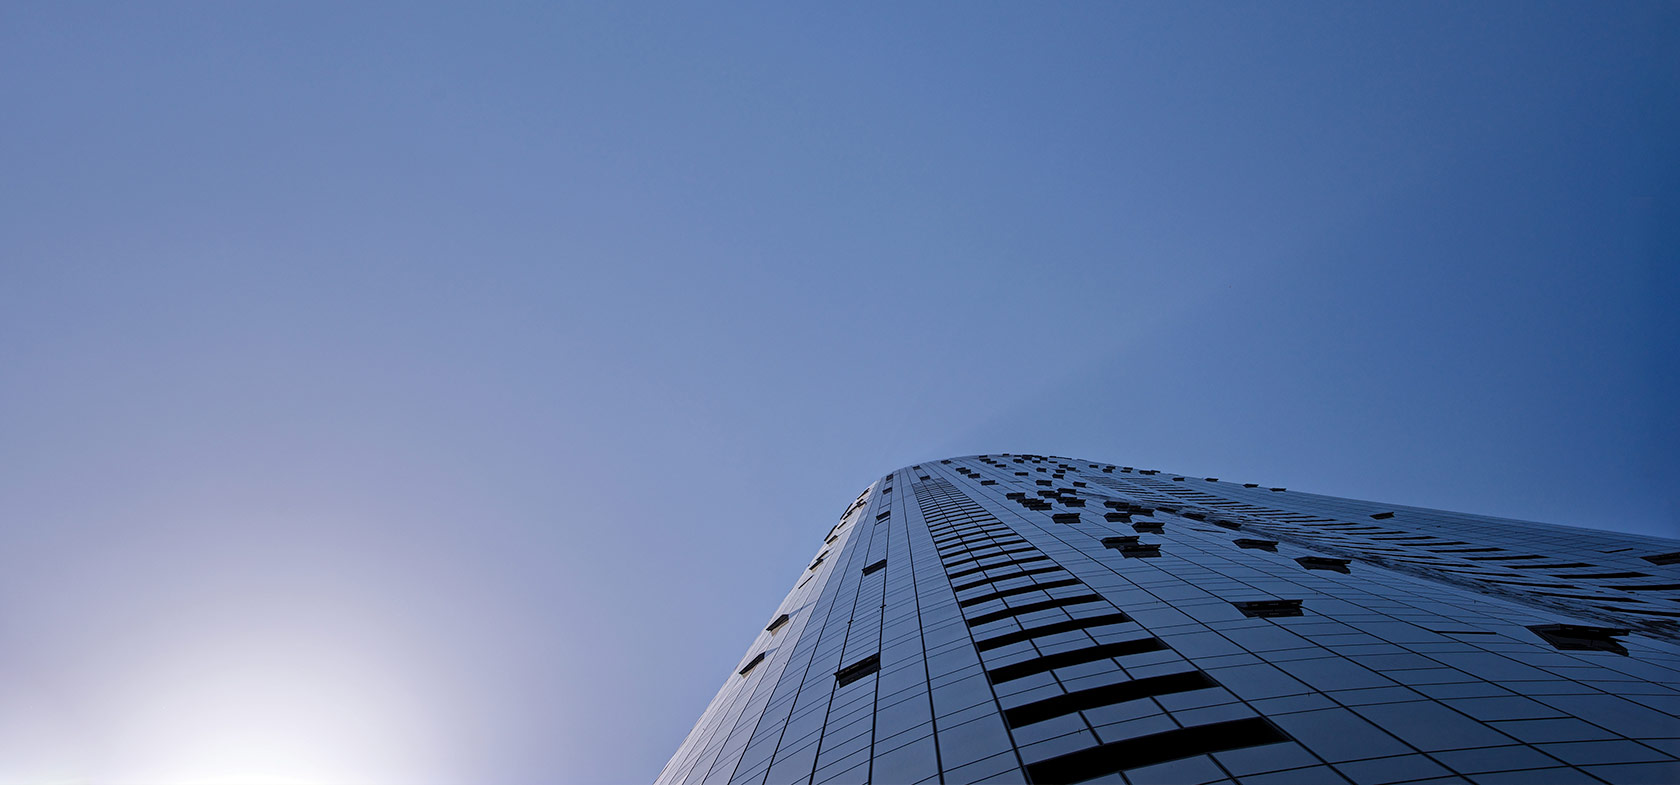 looking up at building in blue sky